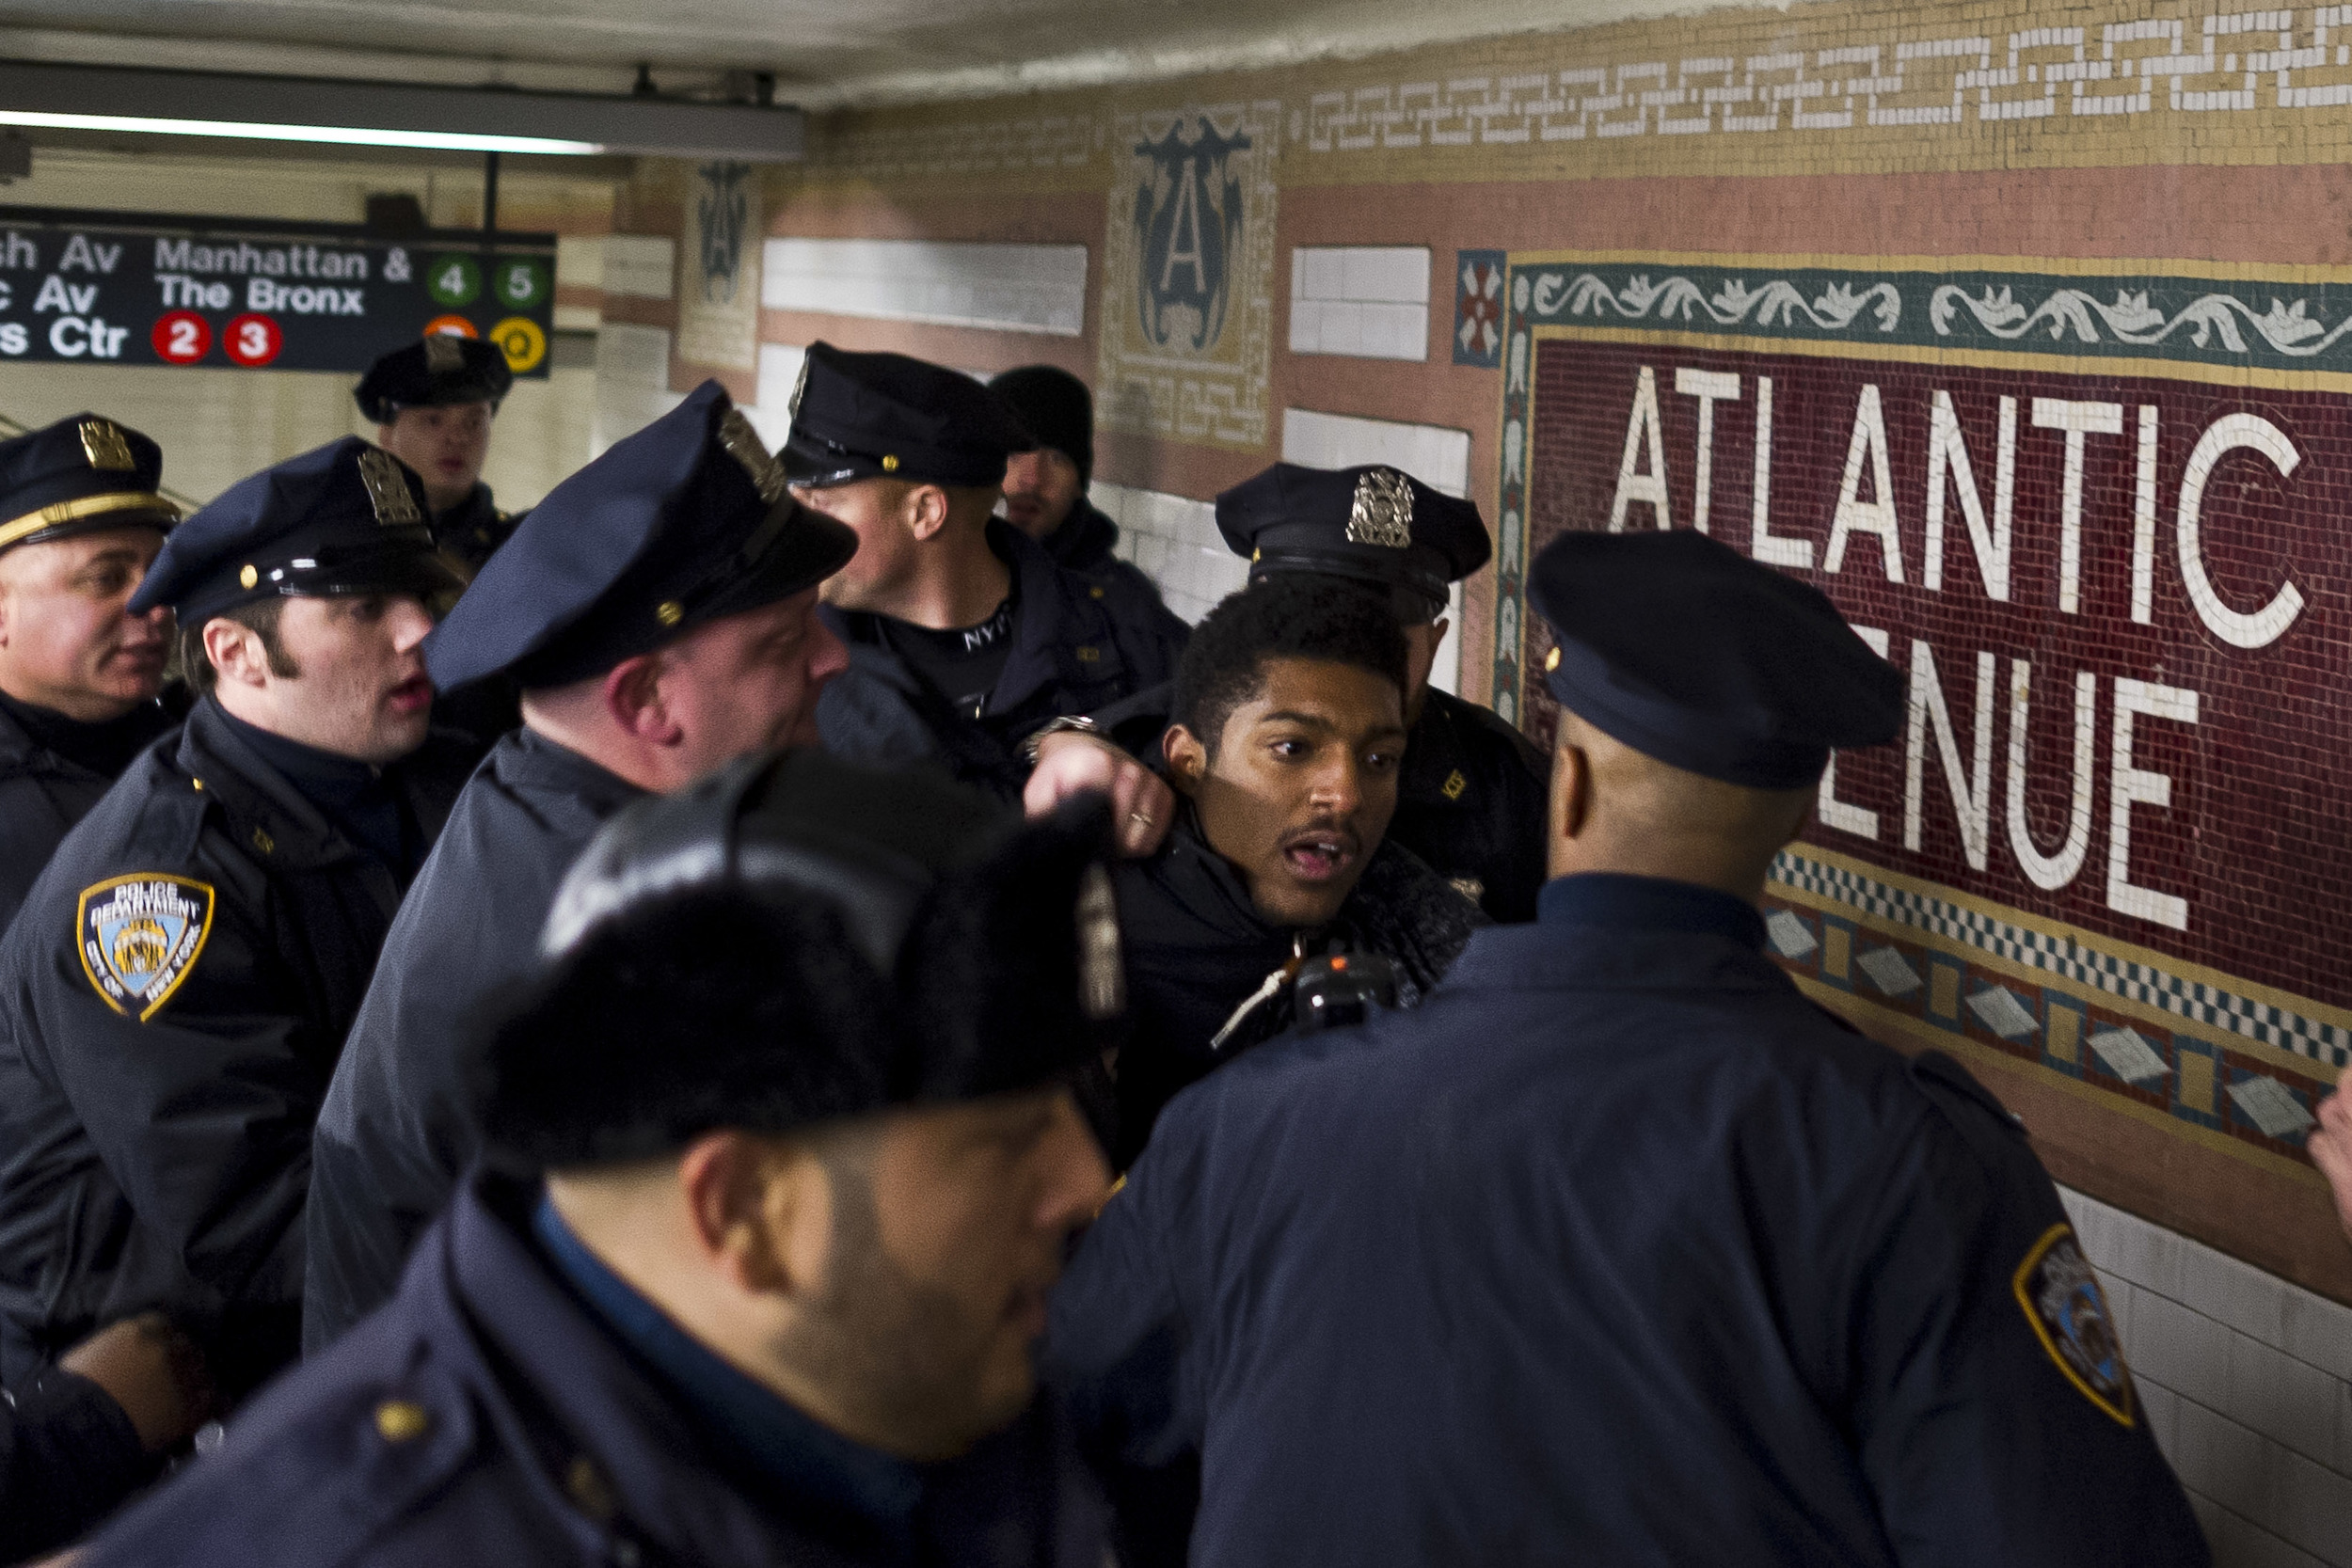 A dozen NYPD officers arrest a lone protestor after a heated standoff inside the Atlantic Avenue subway station in Brooklyn. 2014